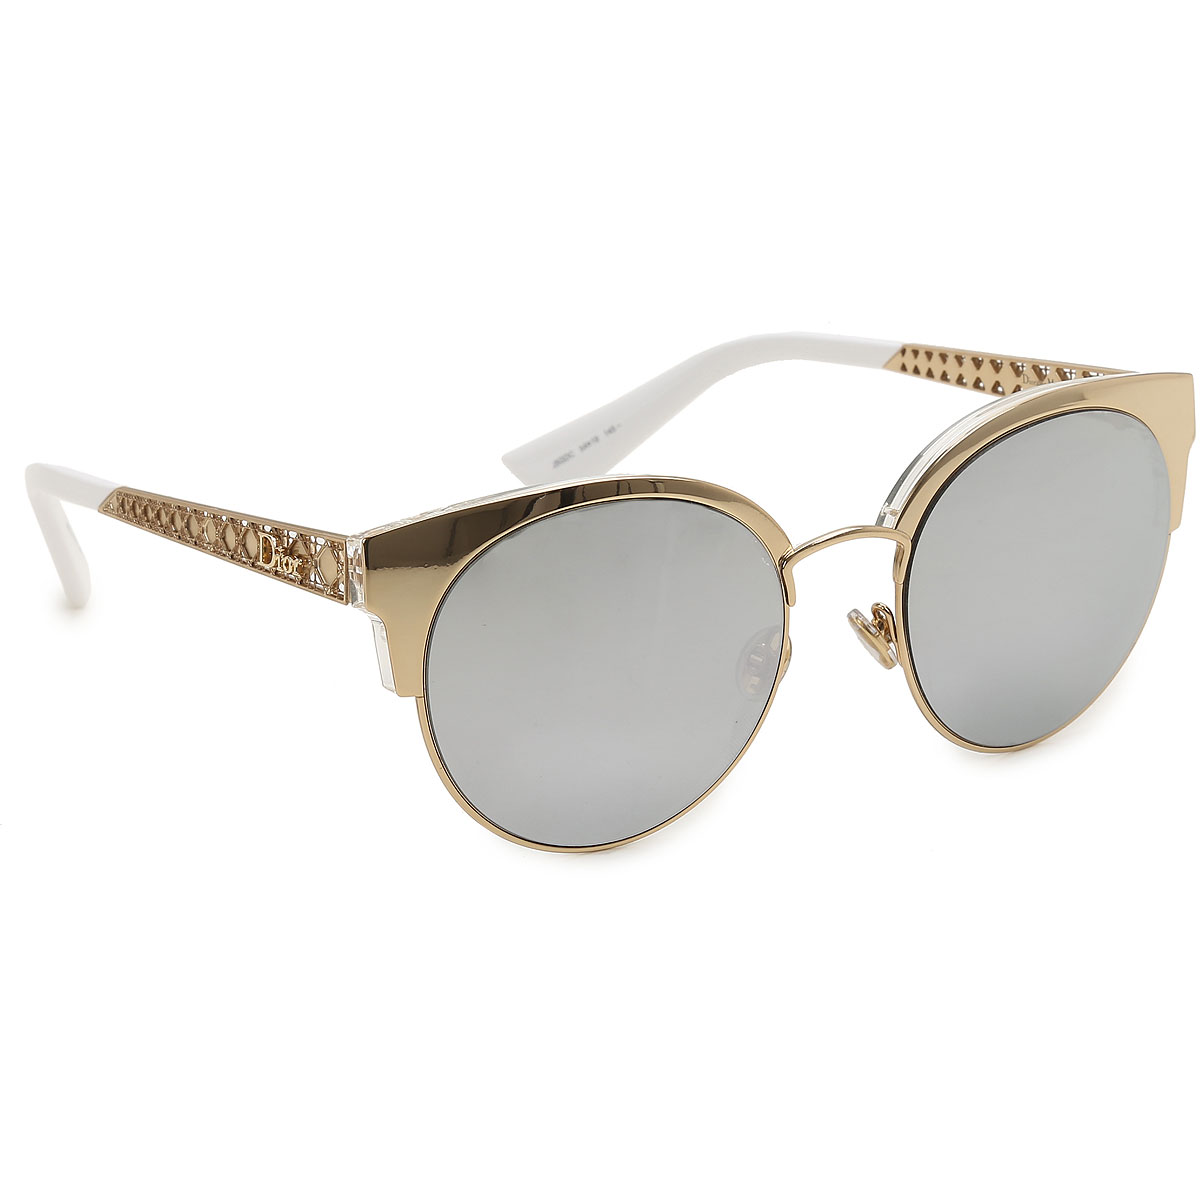 173b25e1f1 Sunglasses Christian Dior